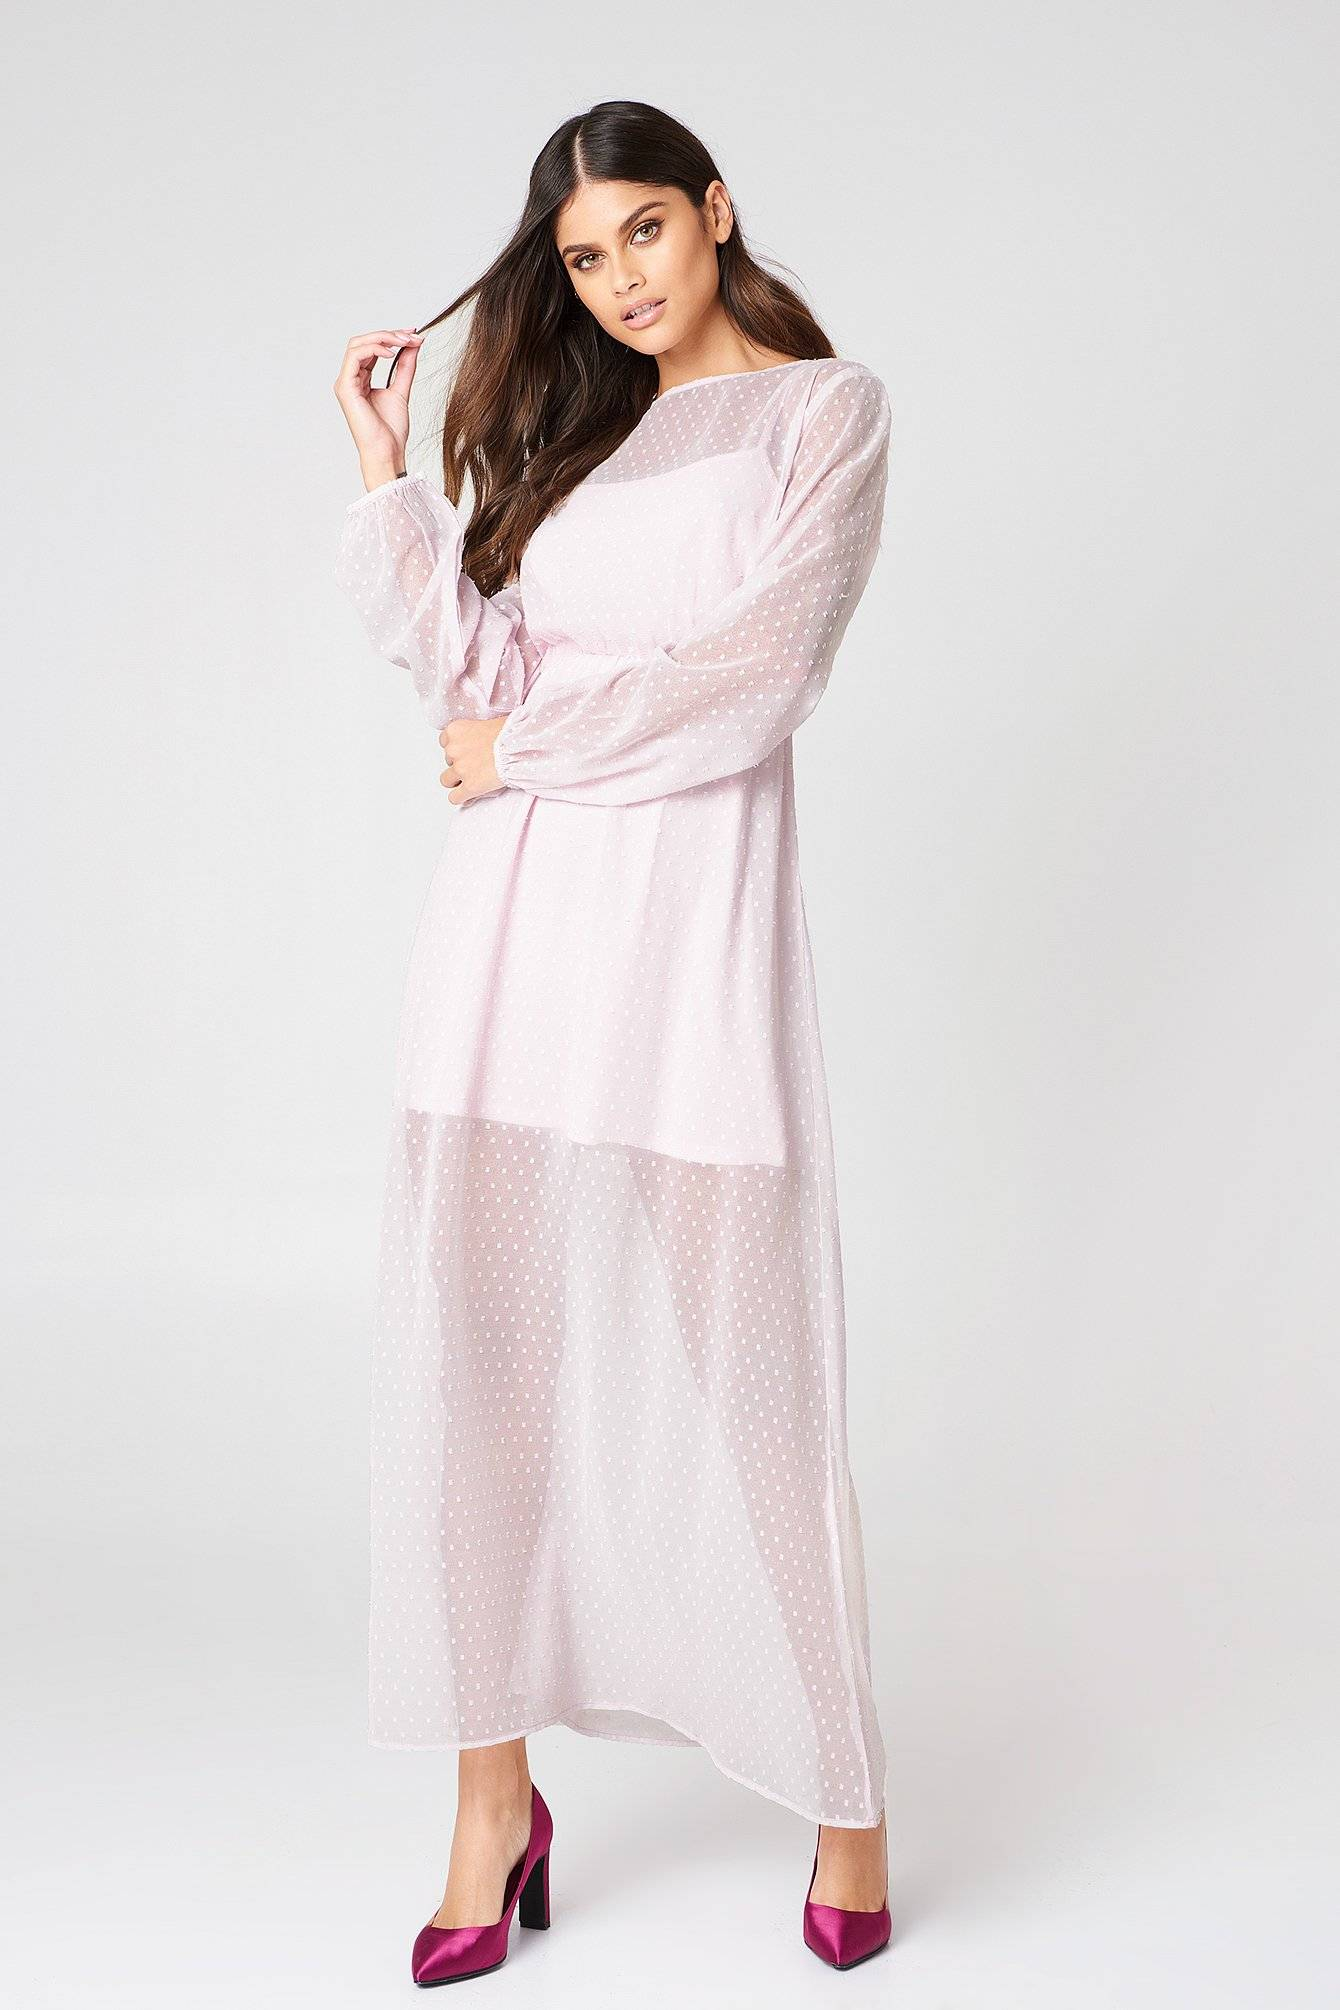 Image of NA-KD Boho LS Dotted Chiffon Maxi Dress - Pink